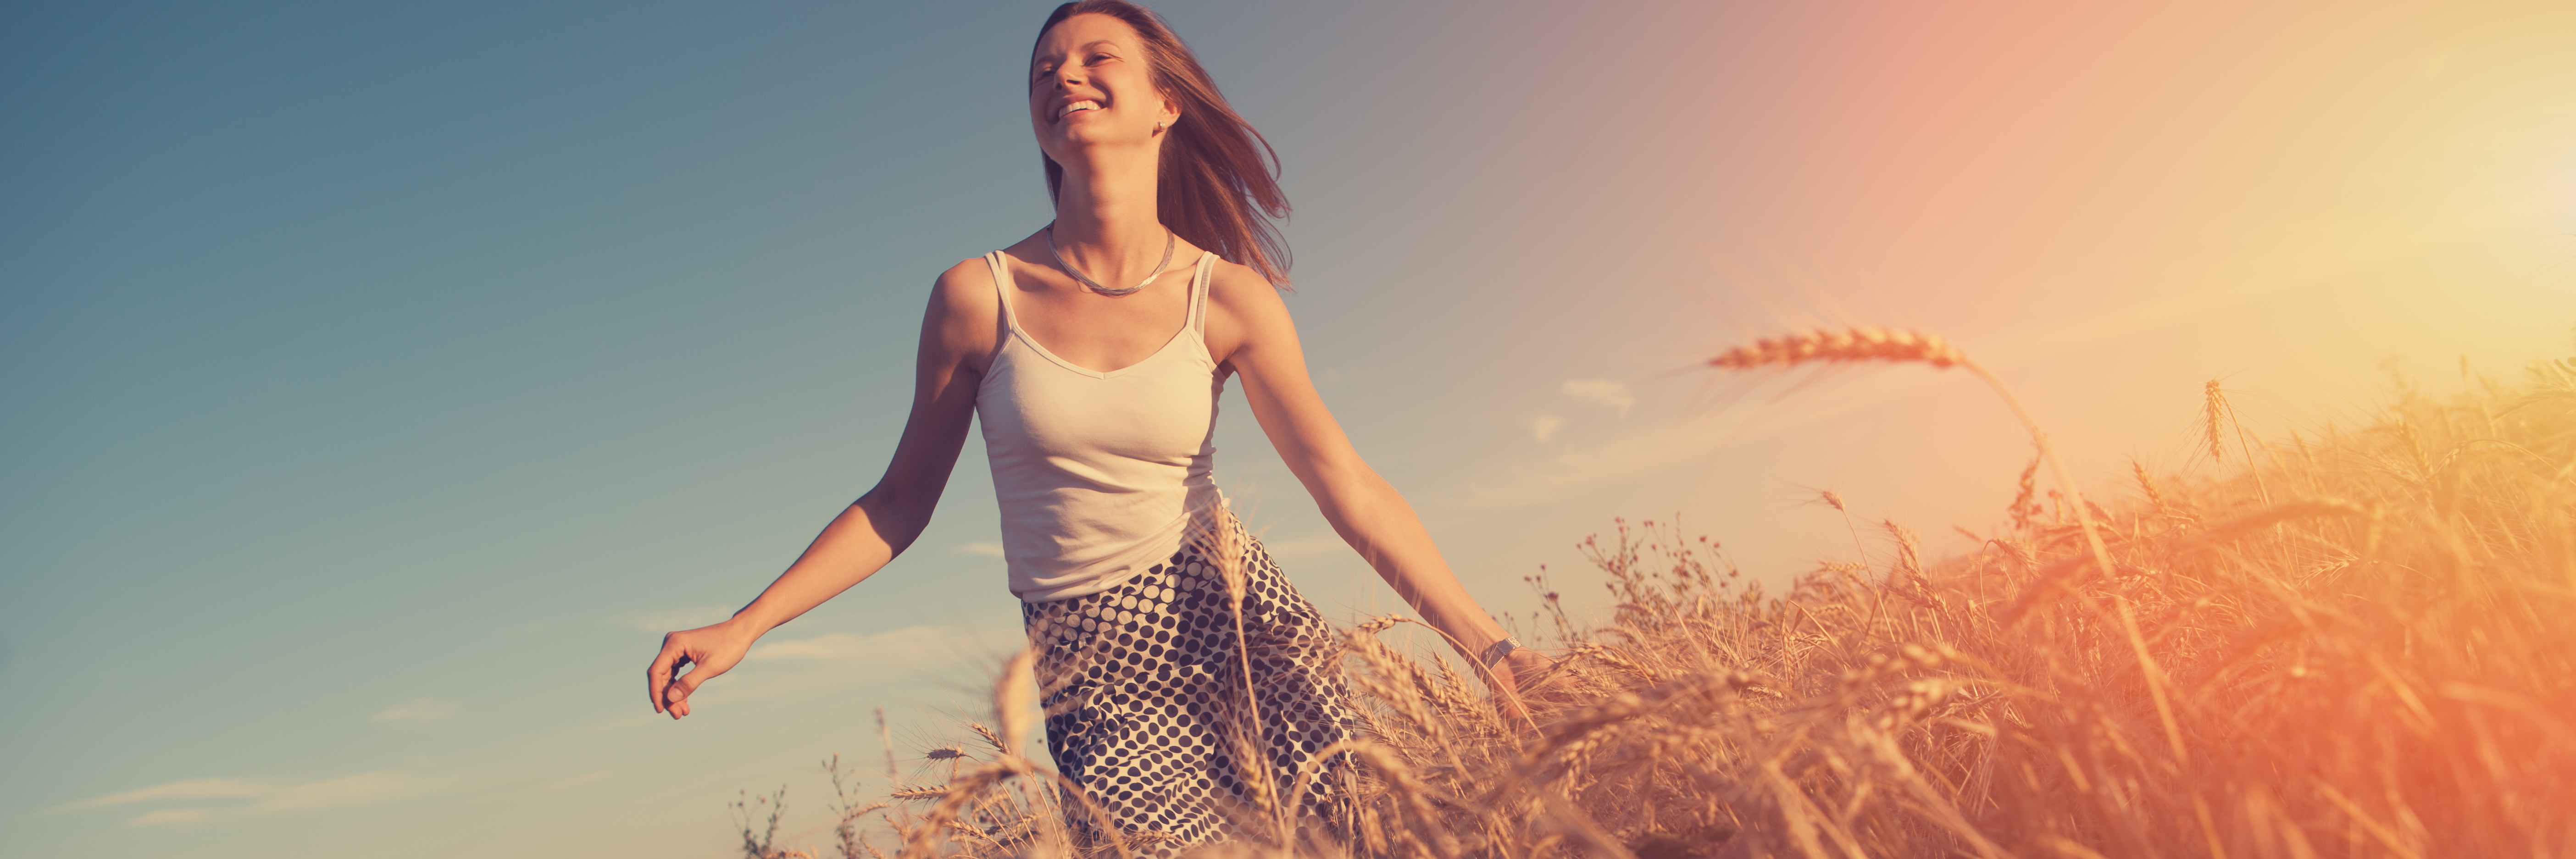 young woman running through field at sunset in summer wearing short sleeved top